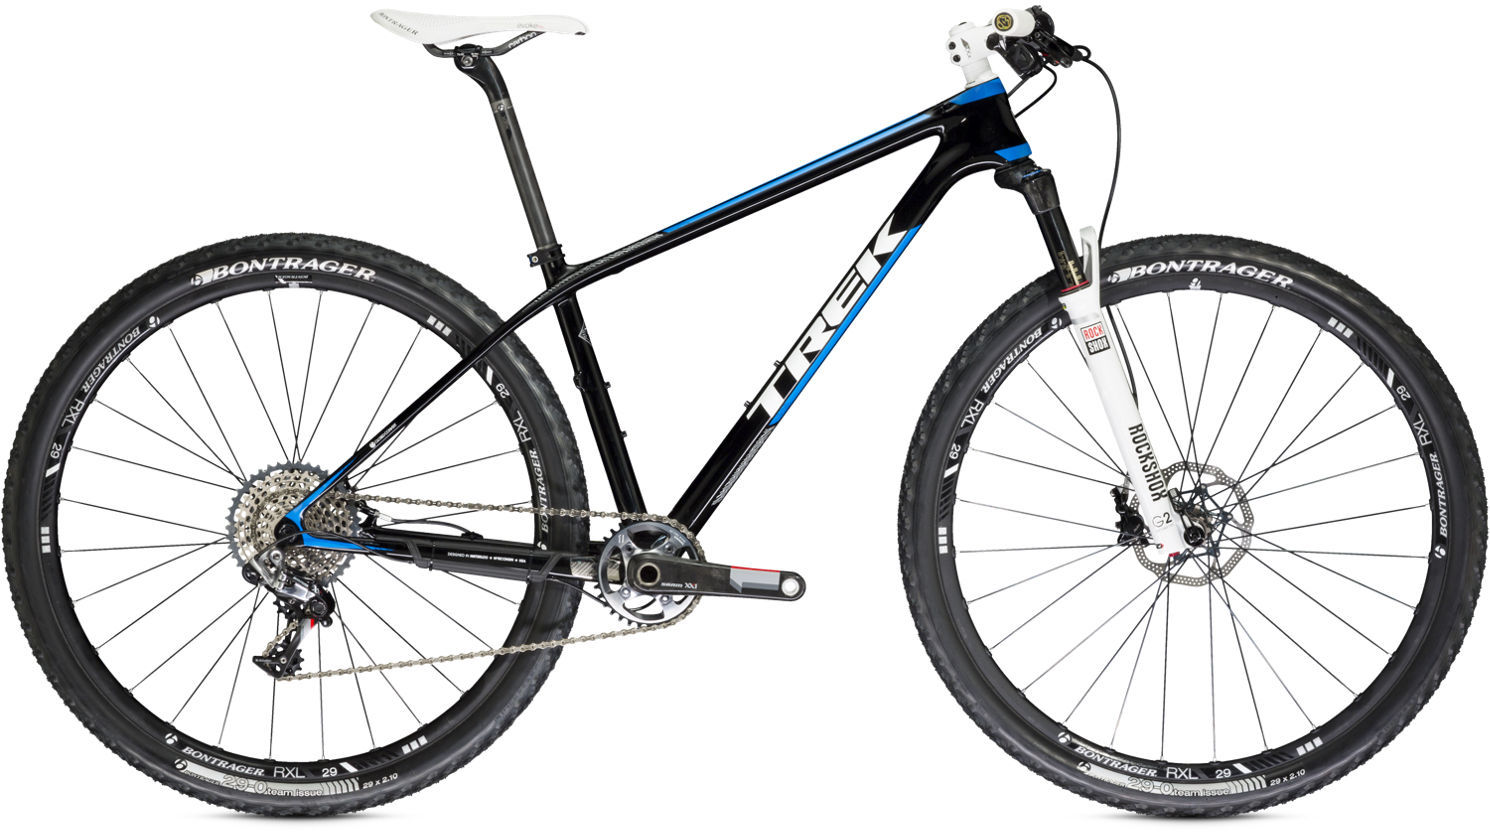 Trek Superfly 9 Hardtail Mountain Bike Leisure